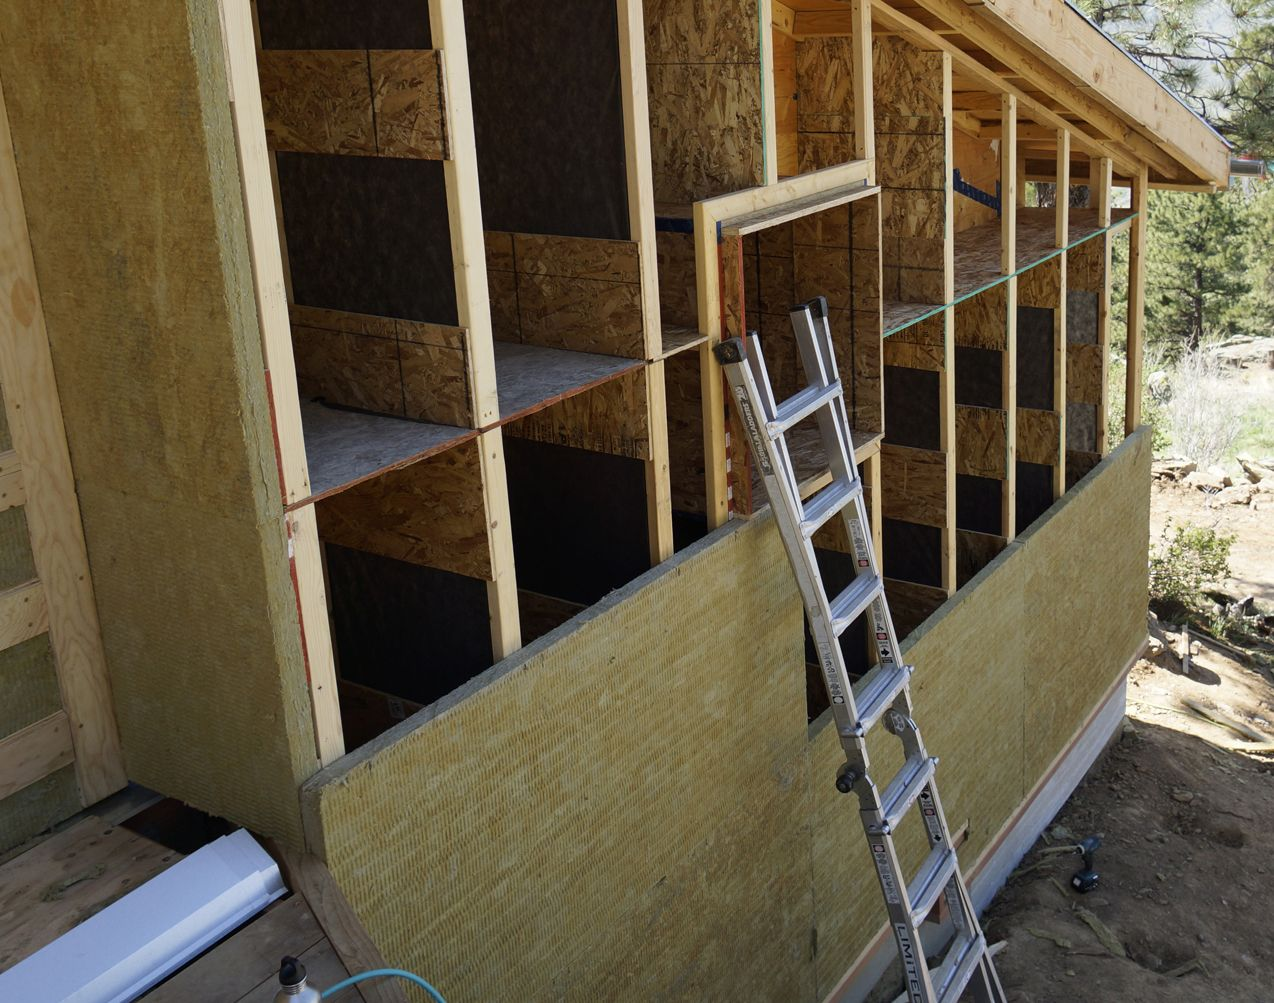 Building A Foam Free House Passive House Exterior Insulation Building A House